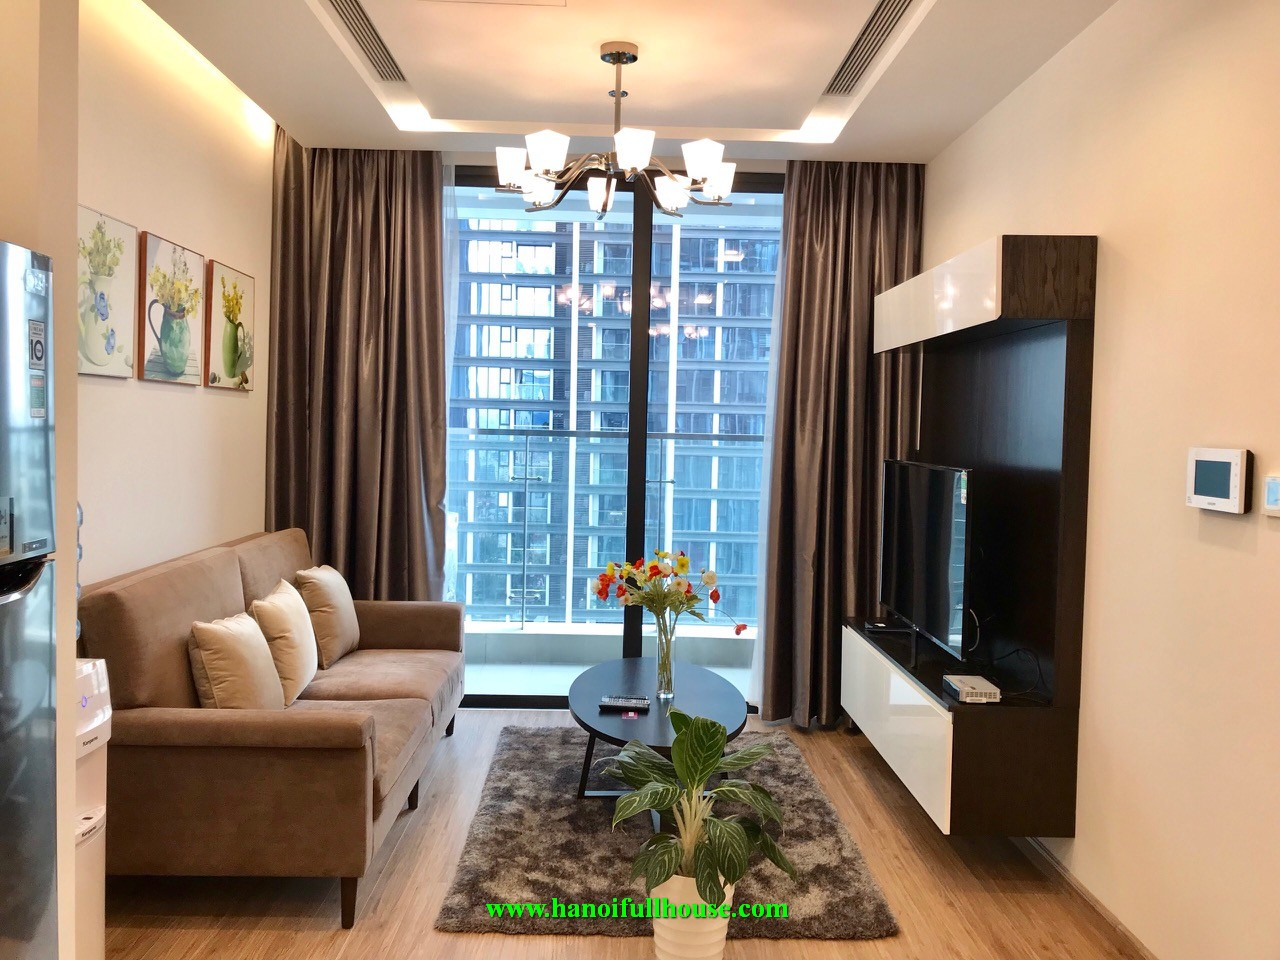 1 BR fully furnishd apartment at Vincom Metropolis on Kim Ma & Lieu Giai street for rent